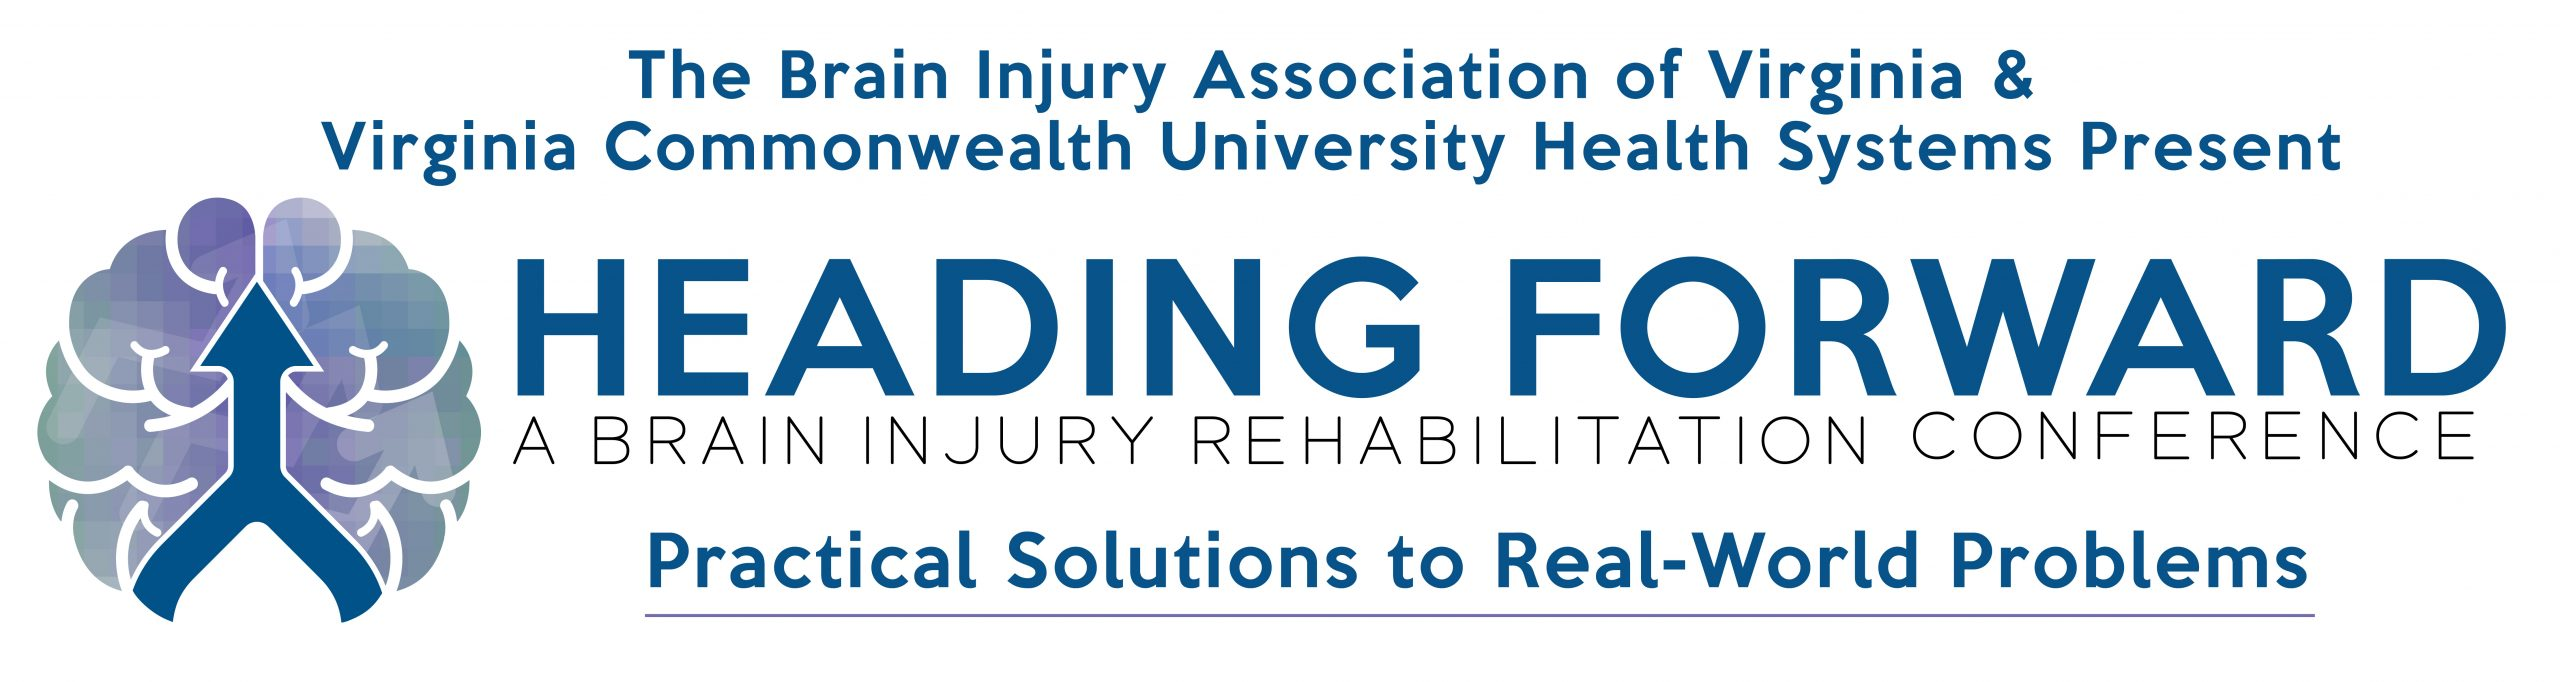 Heading Forward Together Logo - Brain Injury Rehabilitation Conference